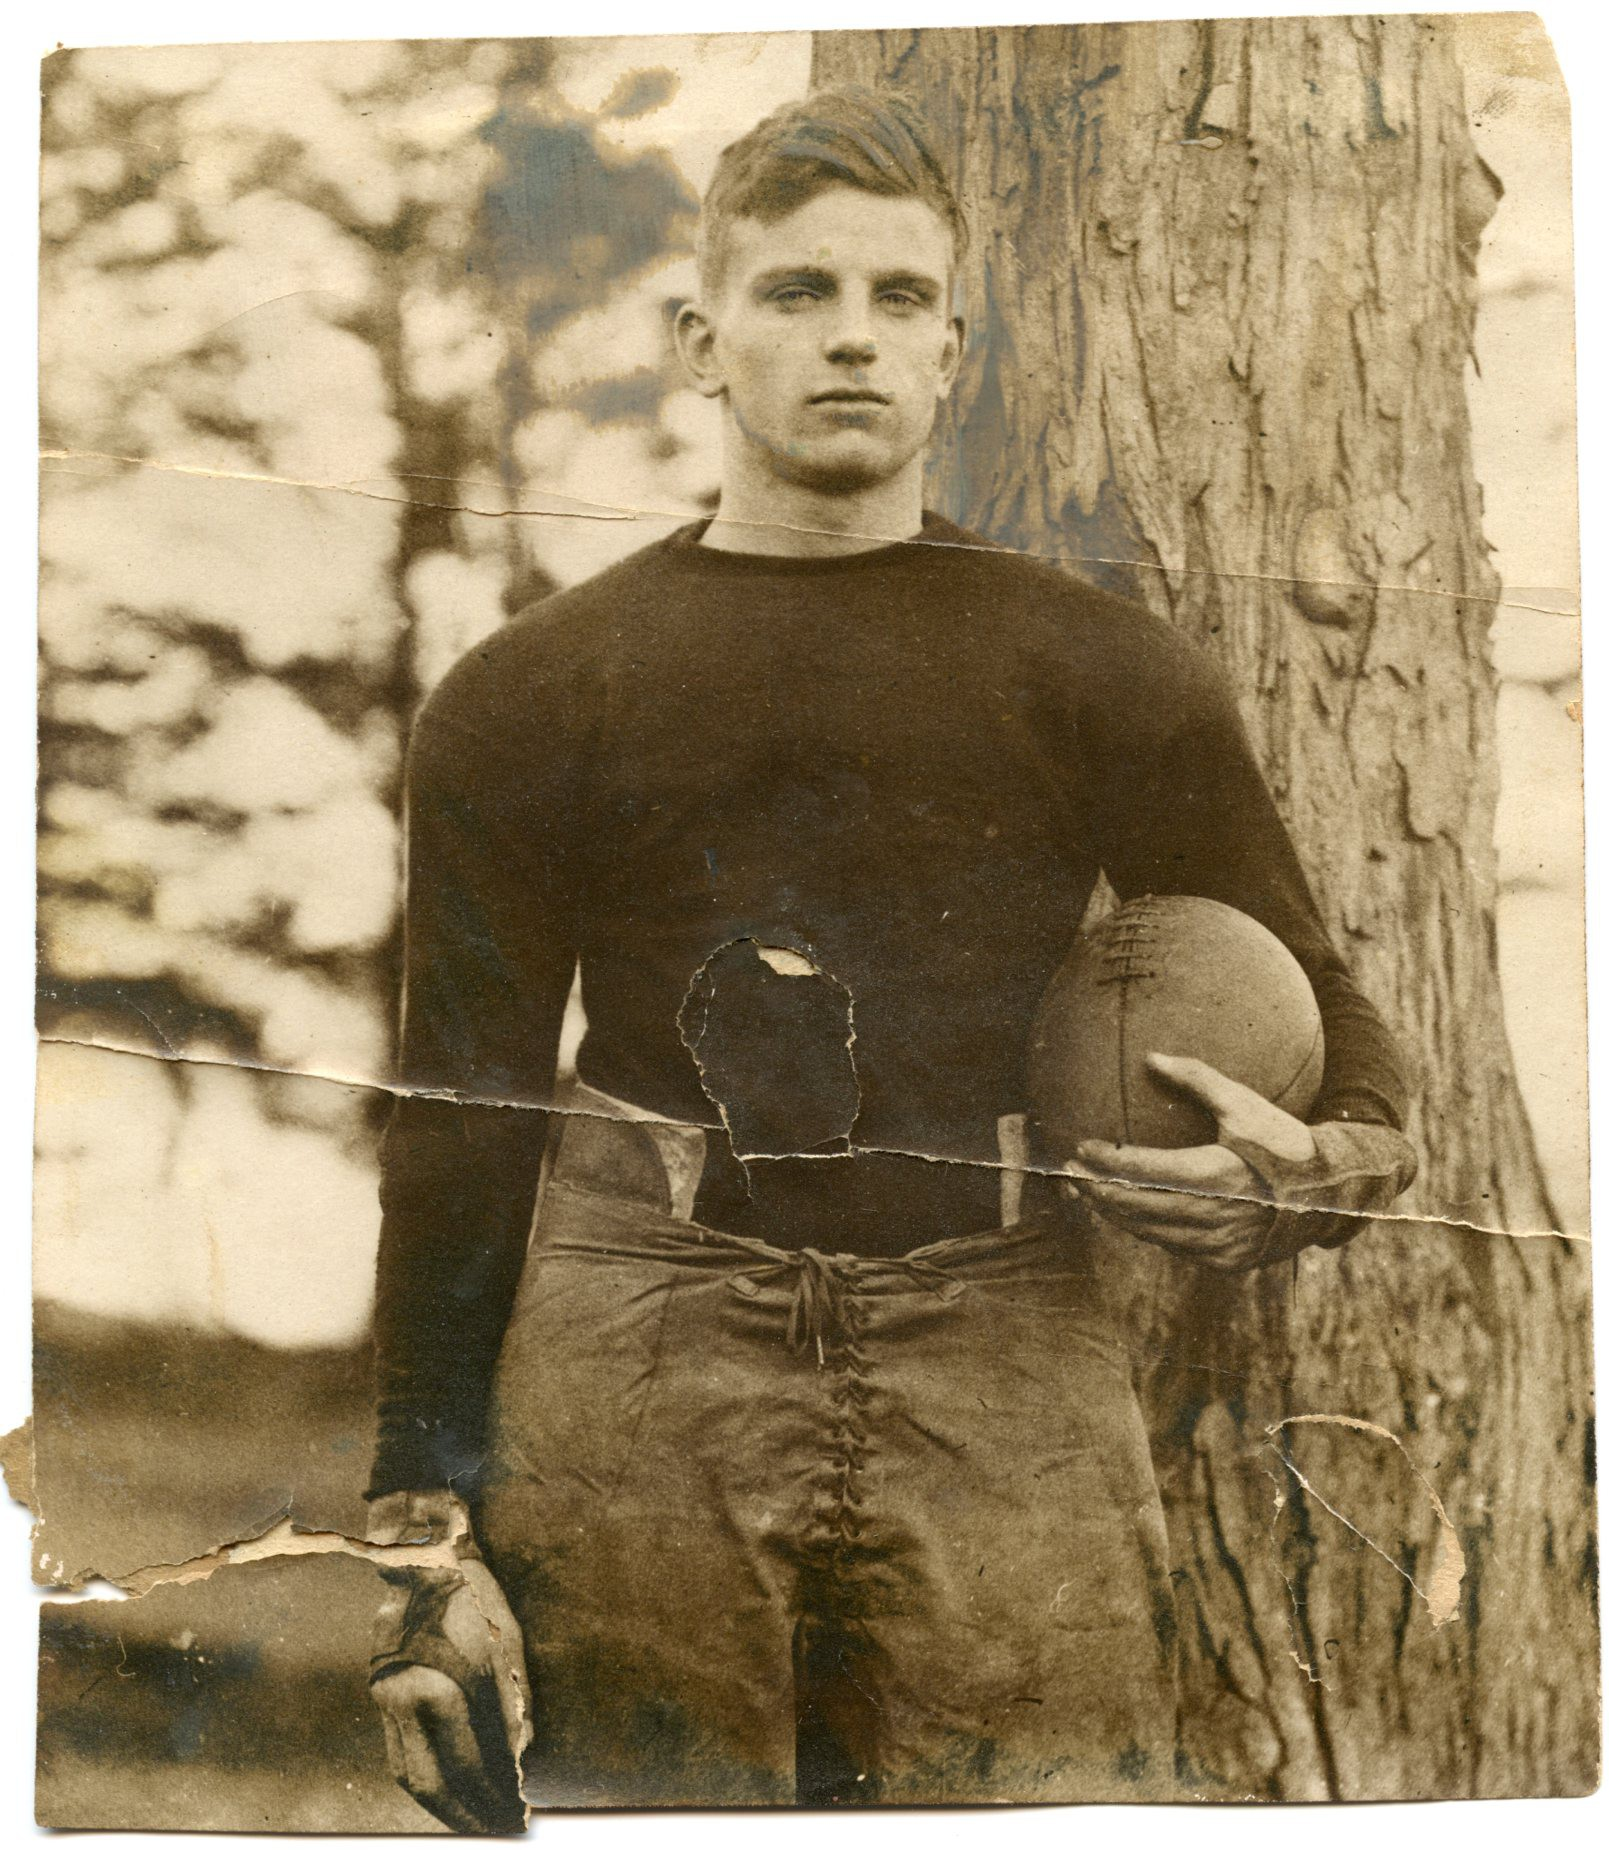 Image of football player, Maureace Dullea, ca. 1920